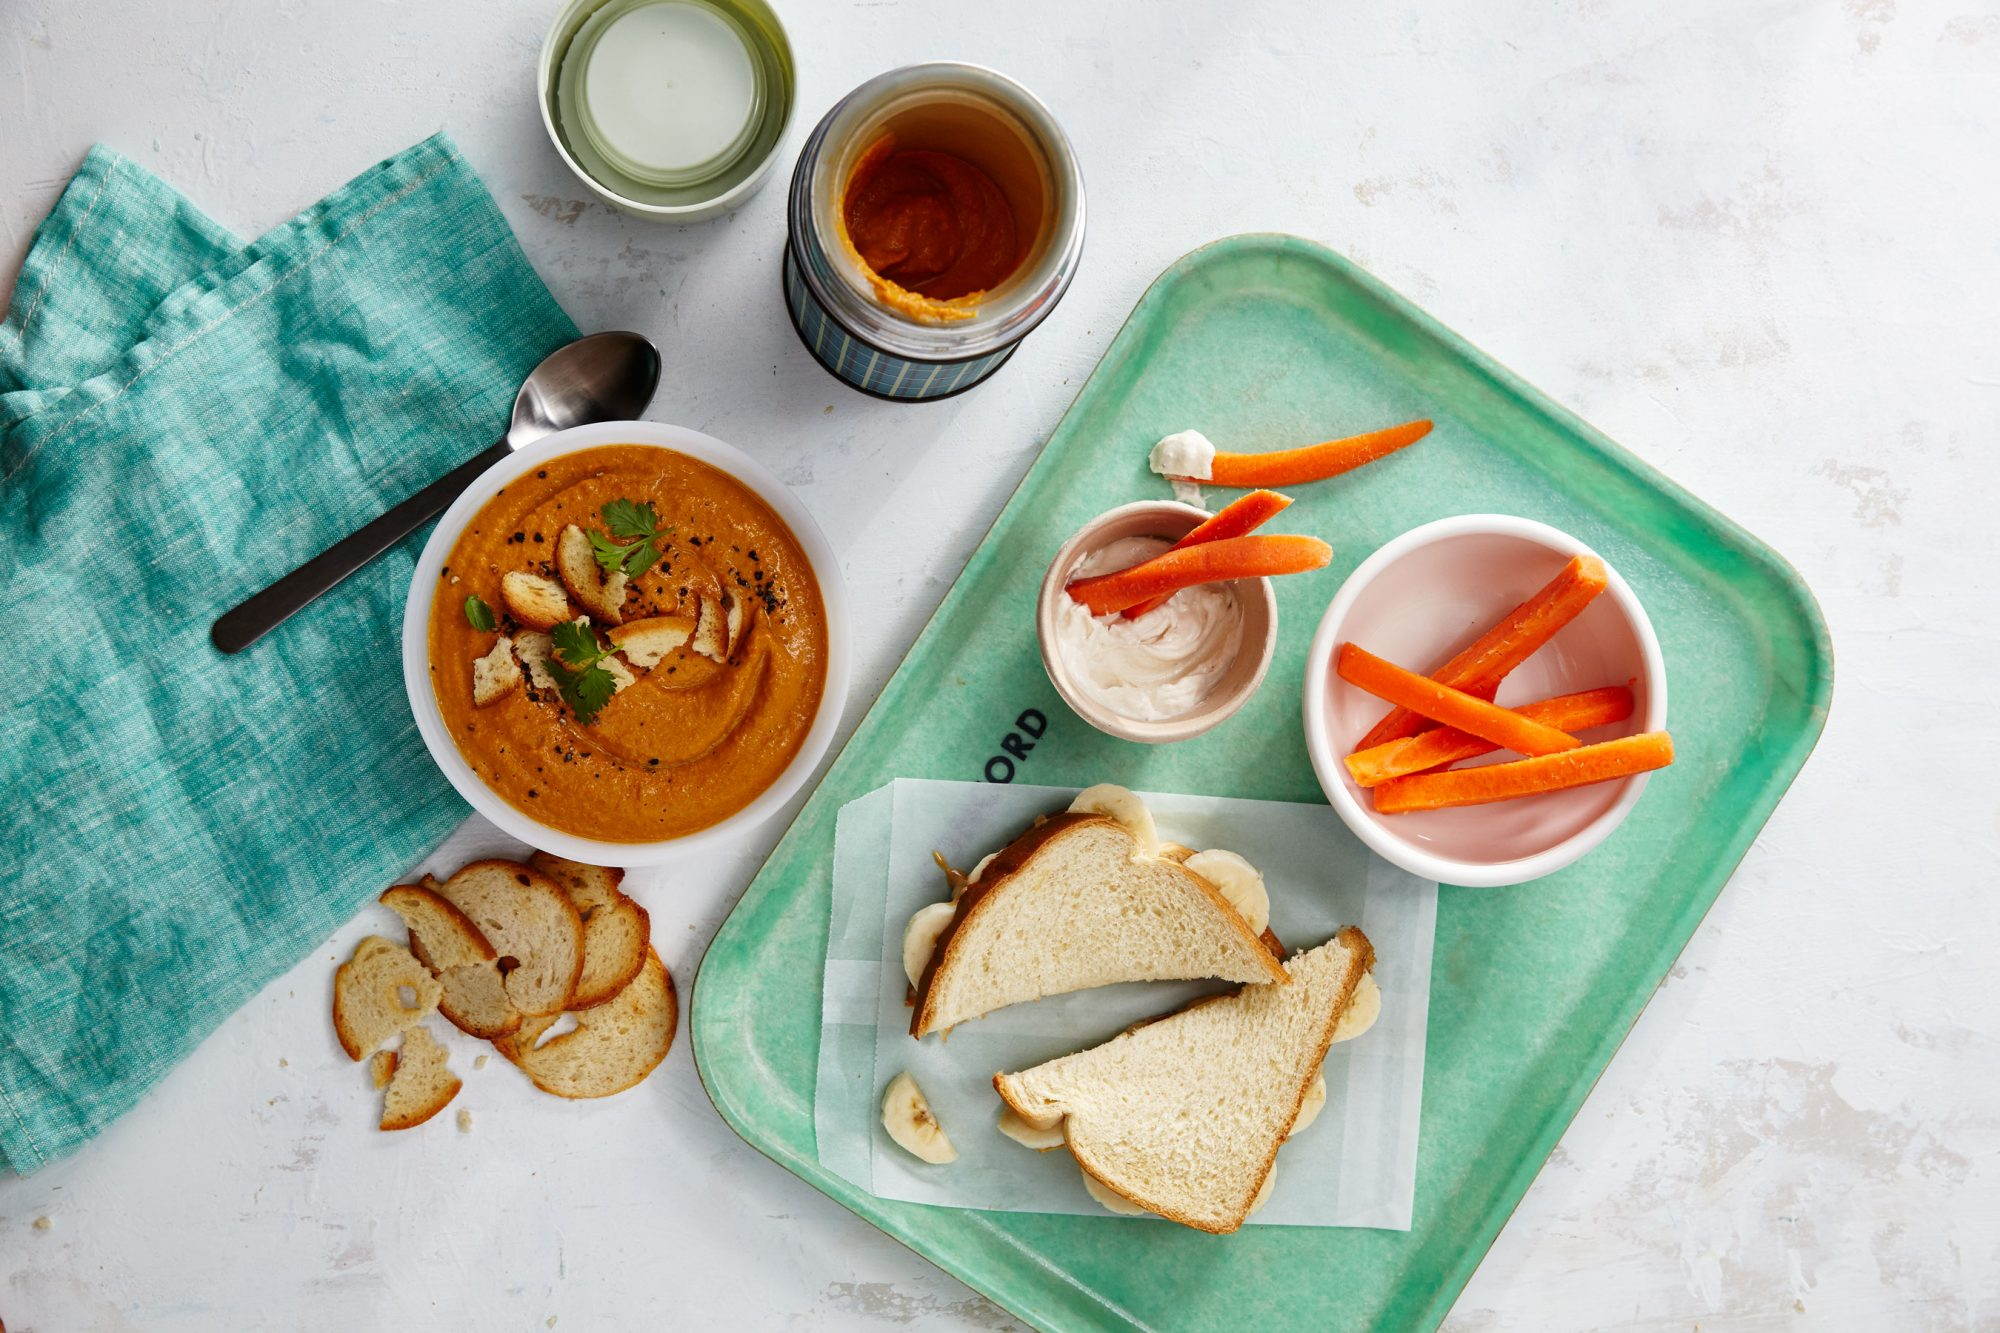 Gingered Carrot Cashew Soup/Cashew Butter Banana Sandwich header image